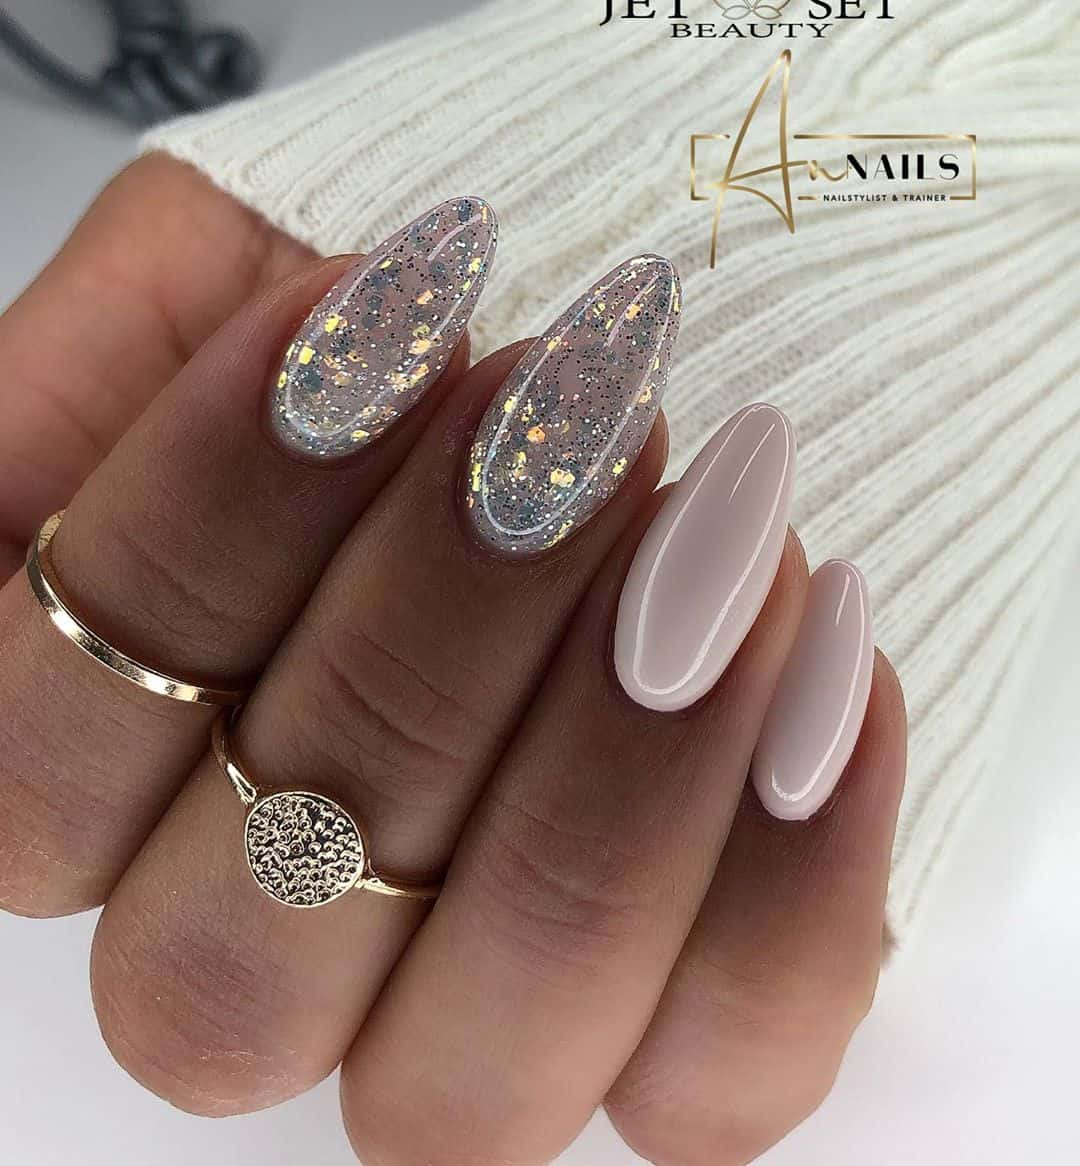 Warm Up Your Hands With These Perfect Nail Designs For The Winter - Designing Options